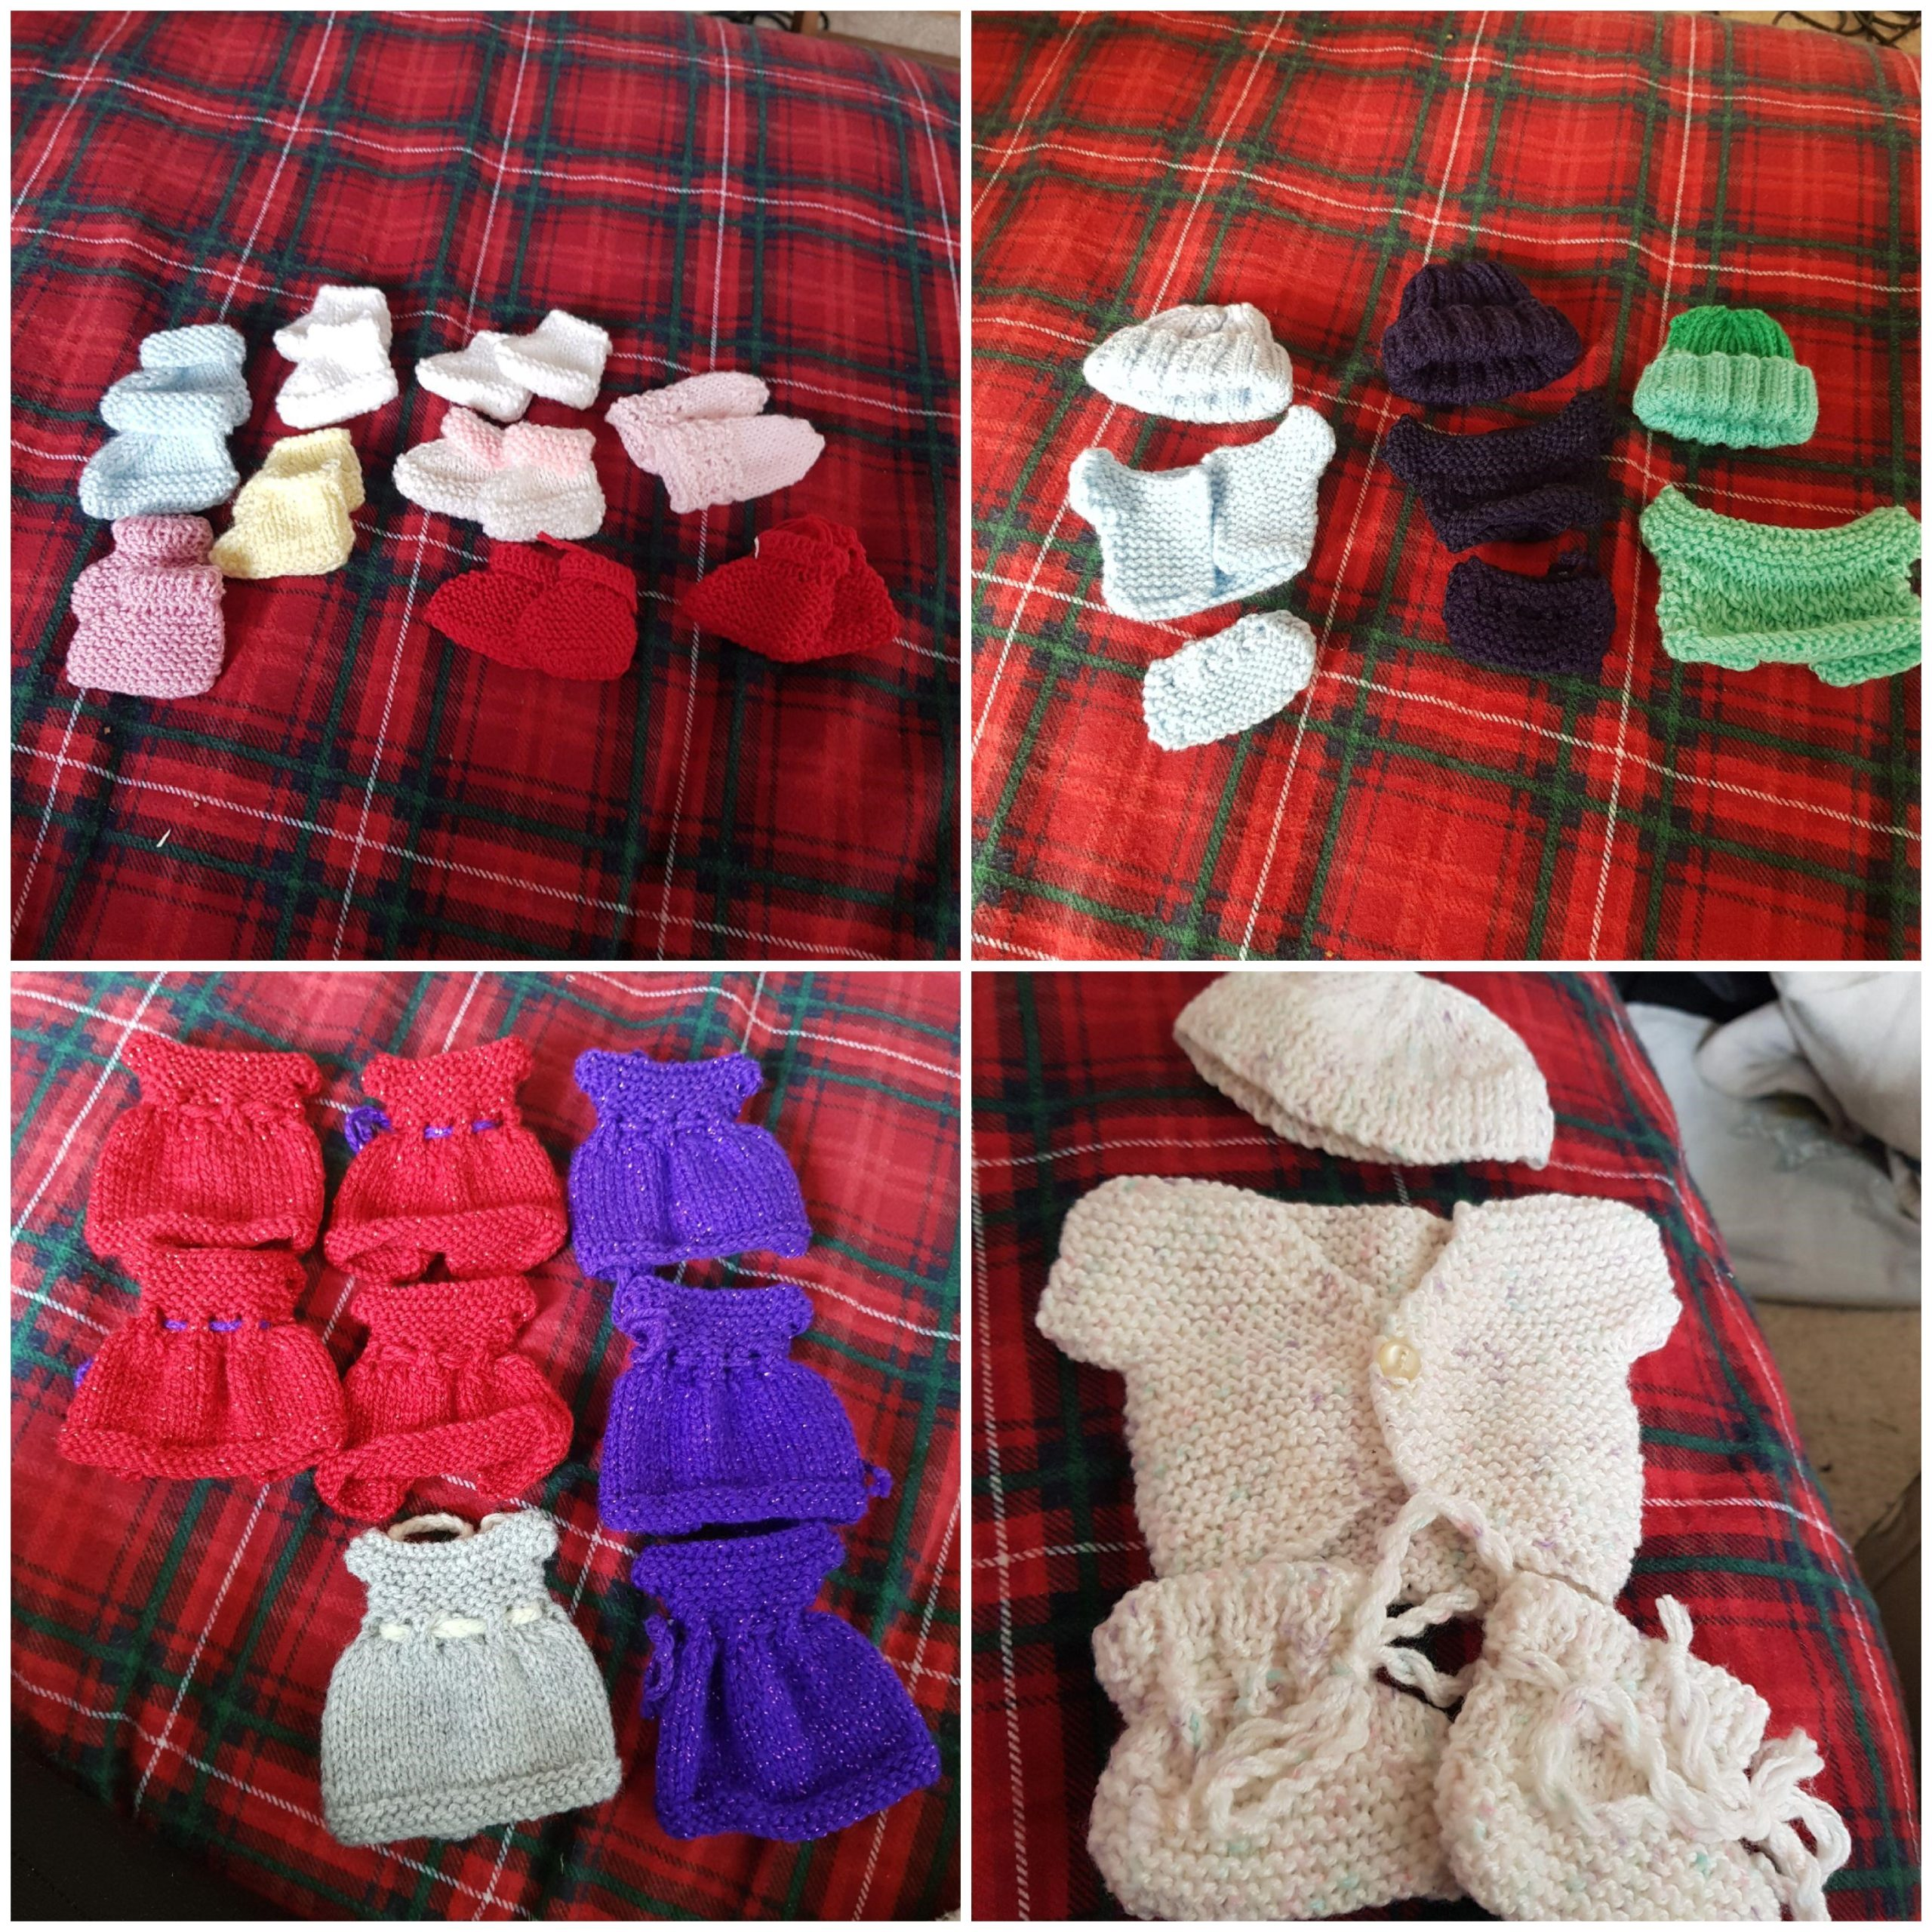 Some of the outfits knitted by Wendy McKinlay